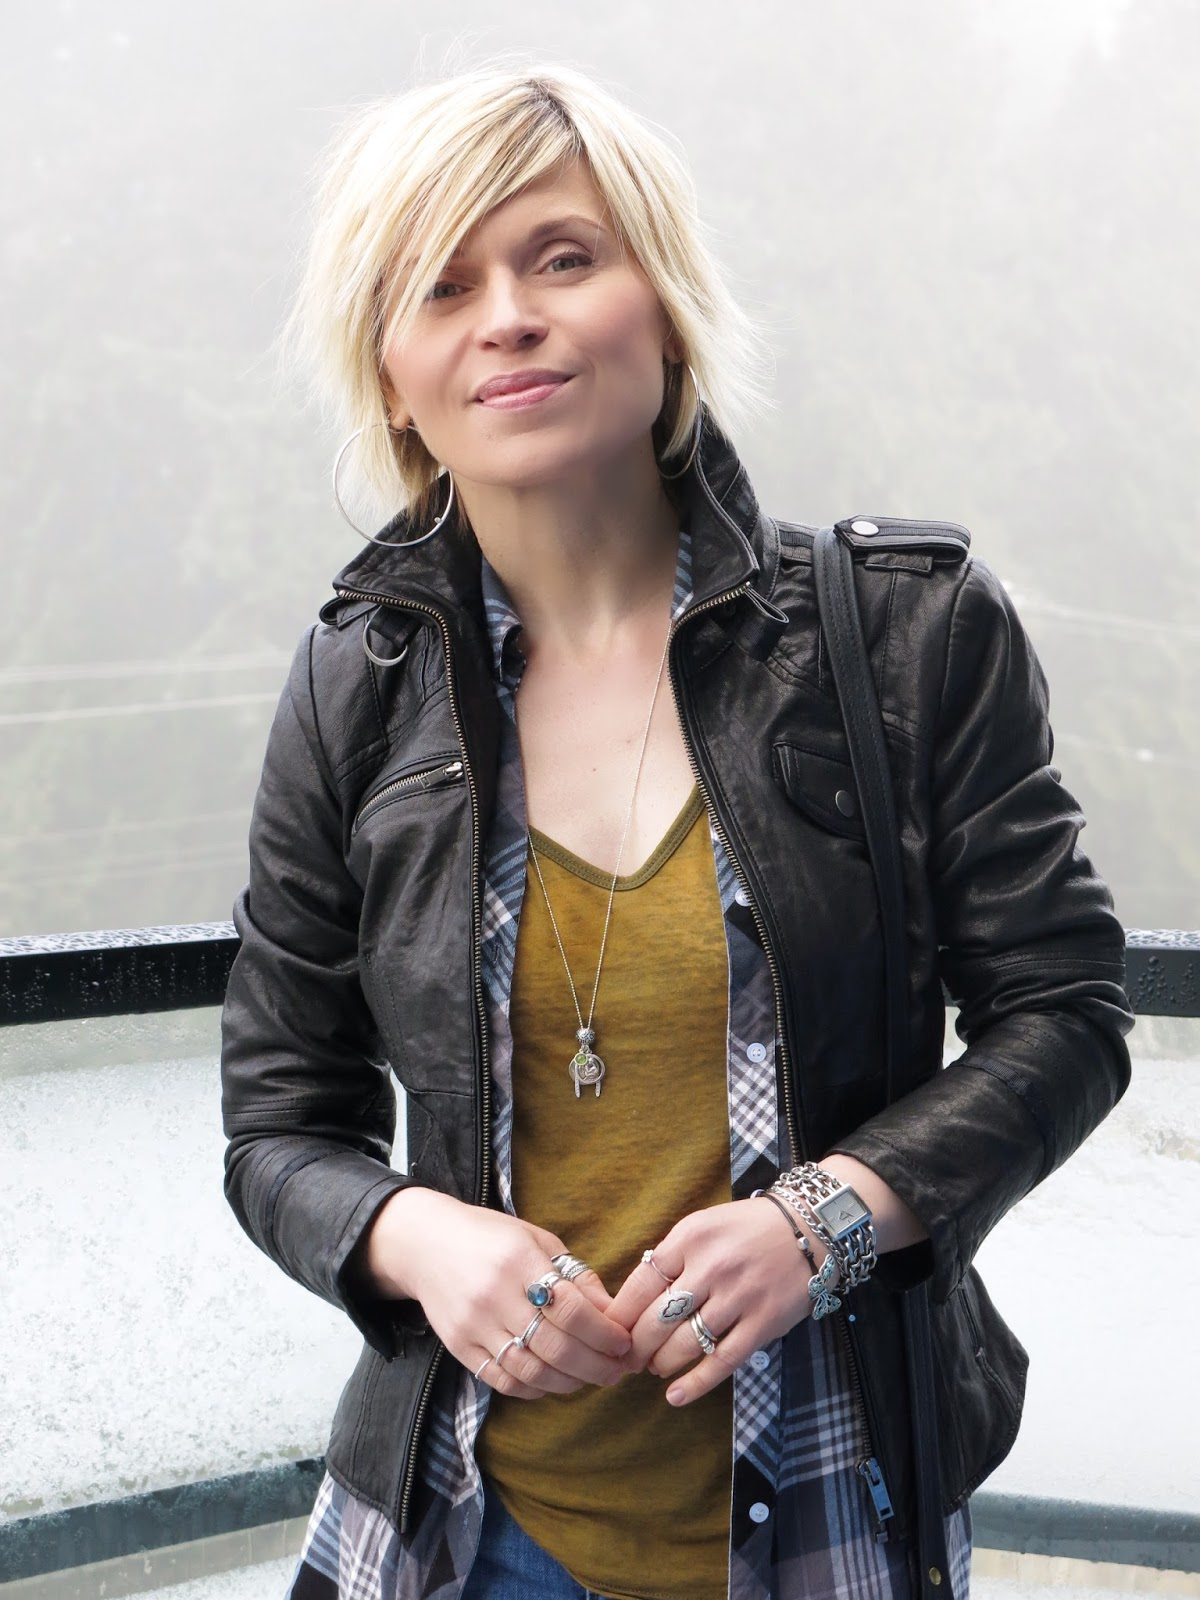 Danier moto jacket with a slouchy tee and plaid shirt